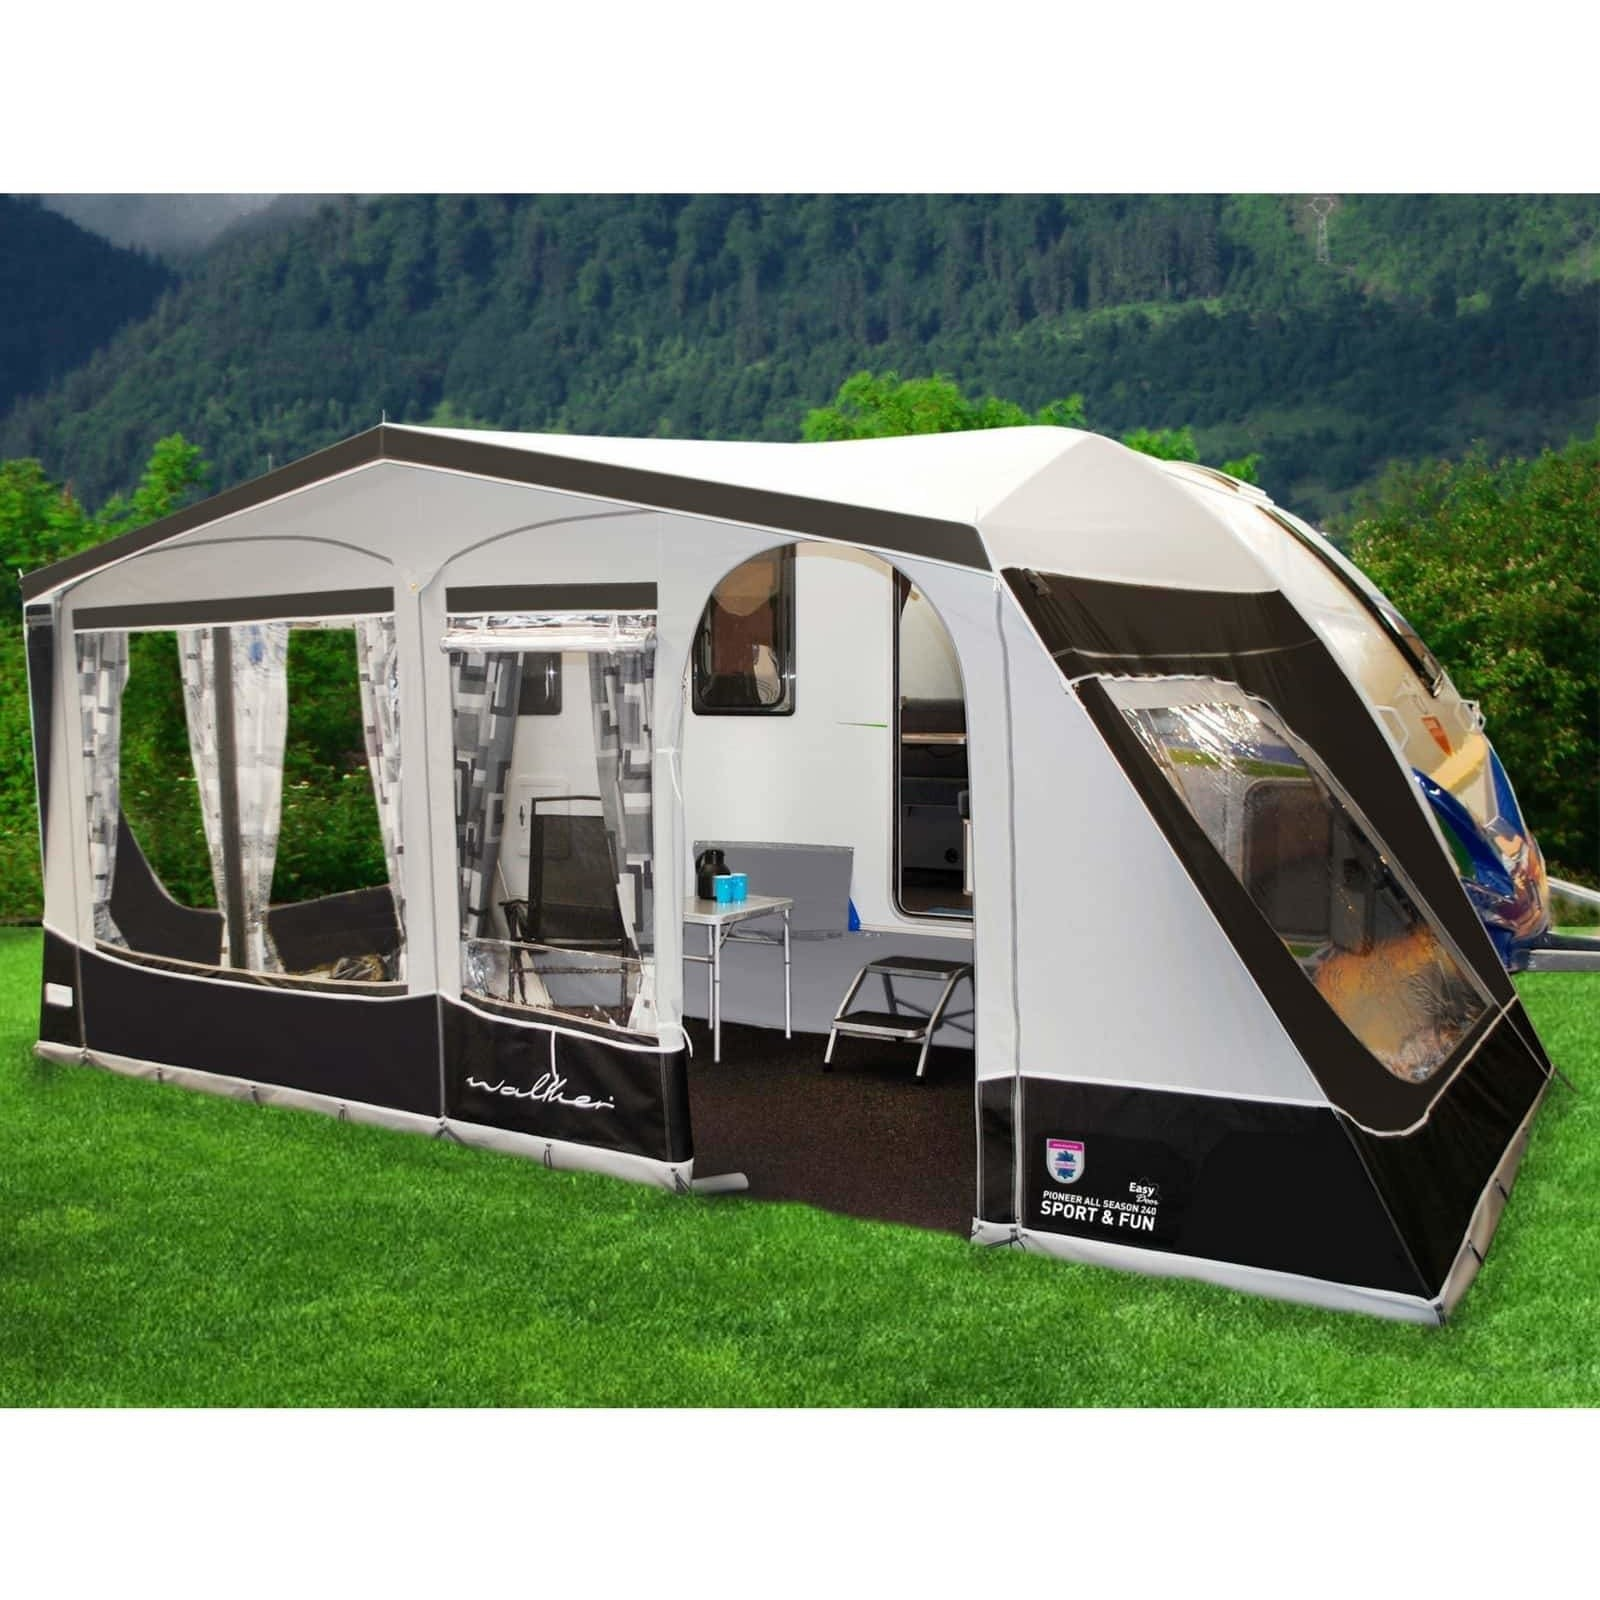 Walker Knaus Sport Amp Fun Full Caravan Awning Traditional